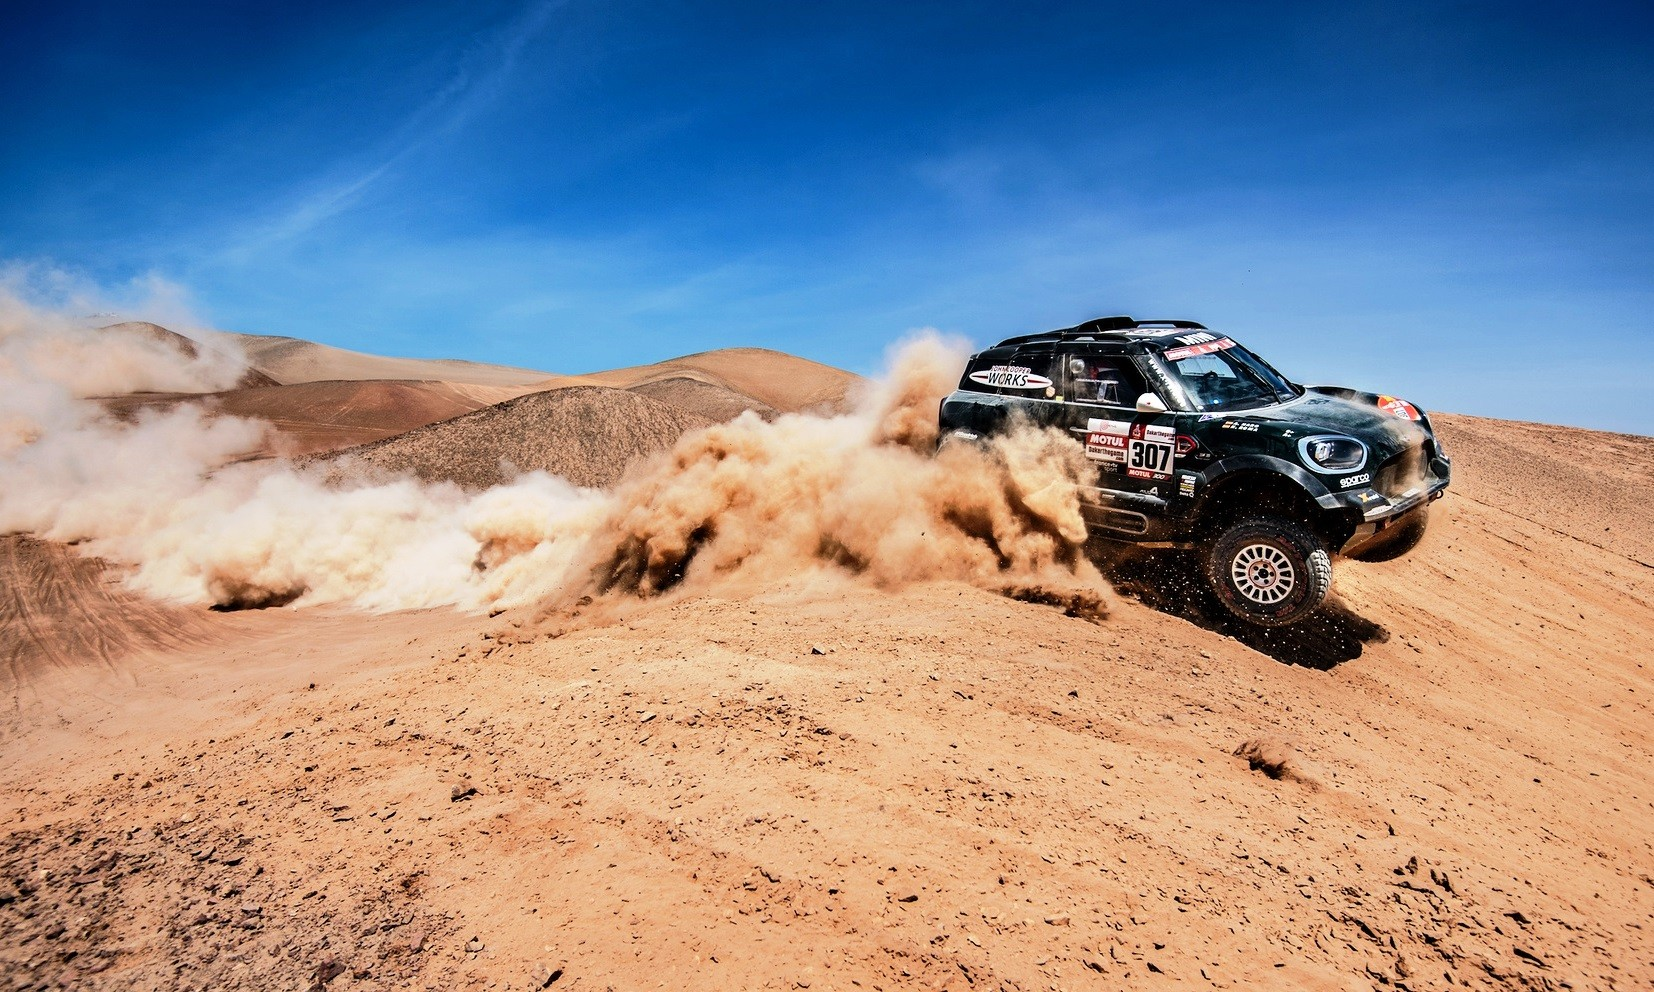 Nani Roma was second on Dakar Rally stage 7